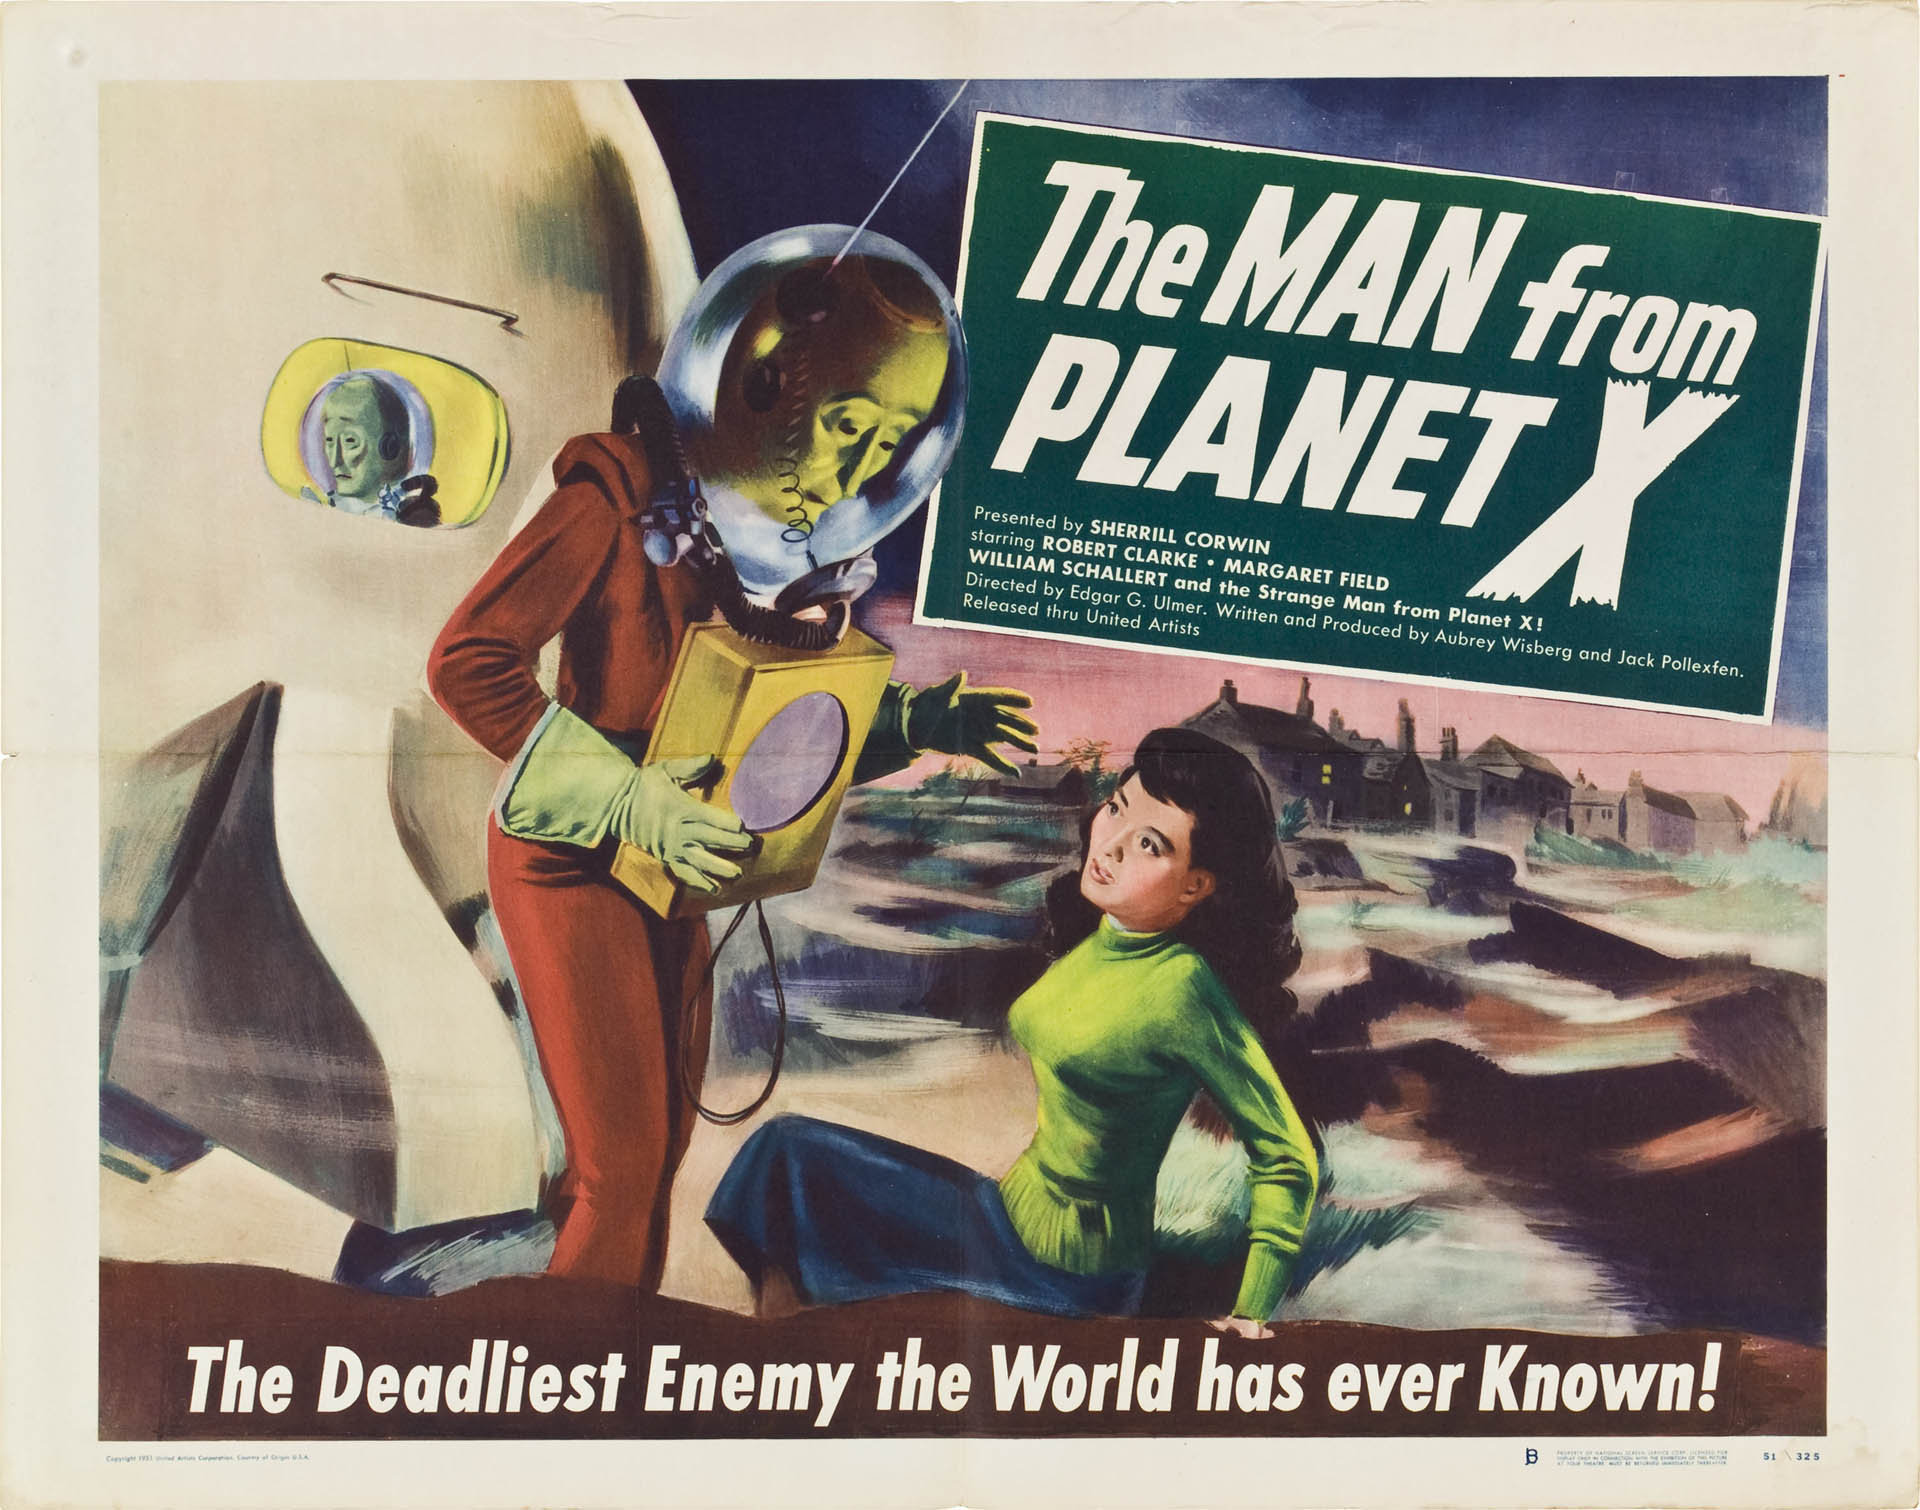 the-man-from-planet-x